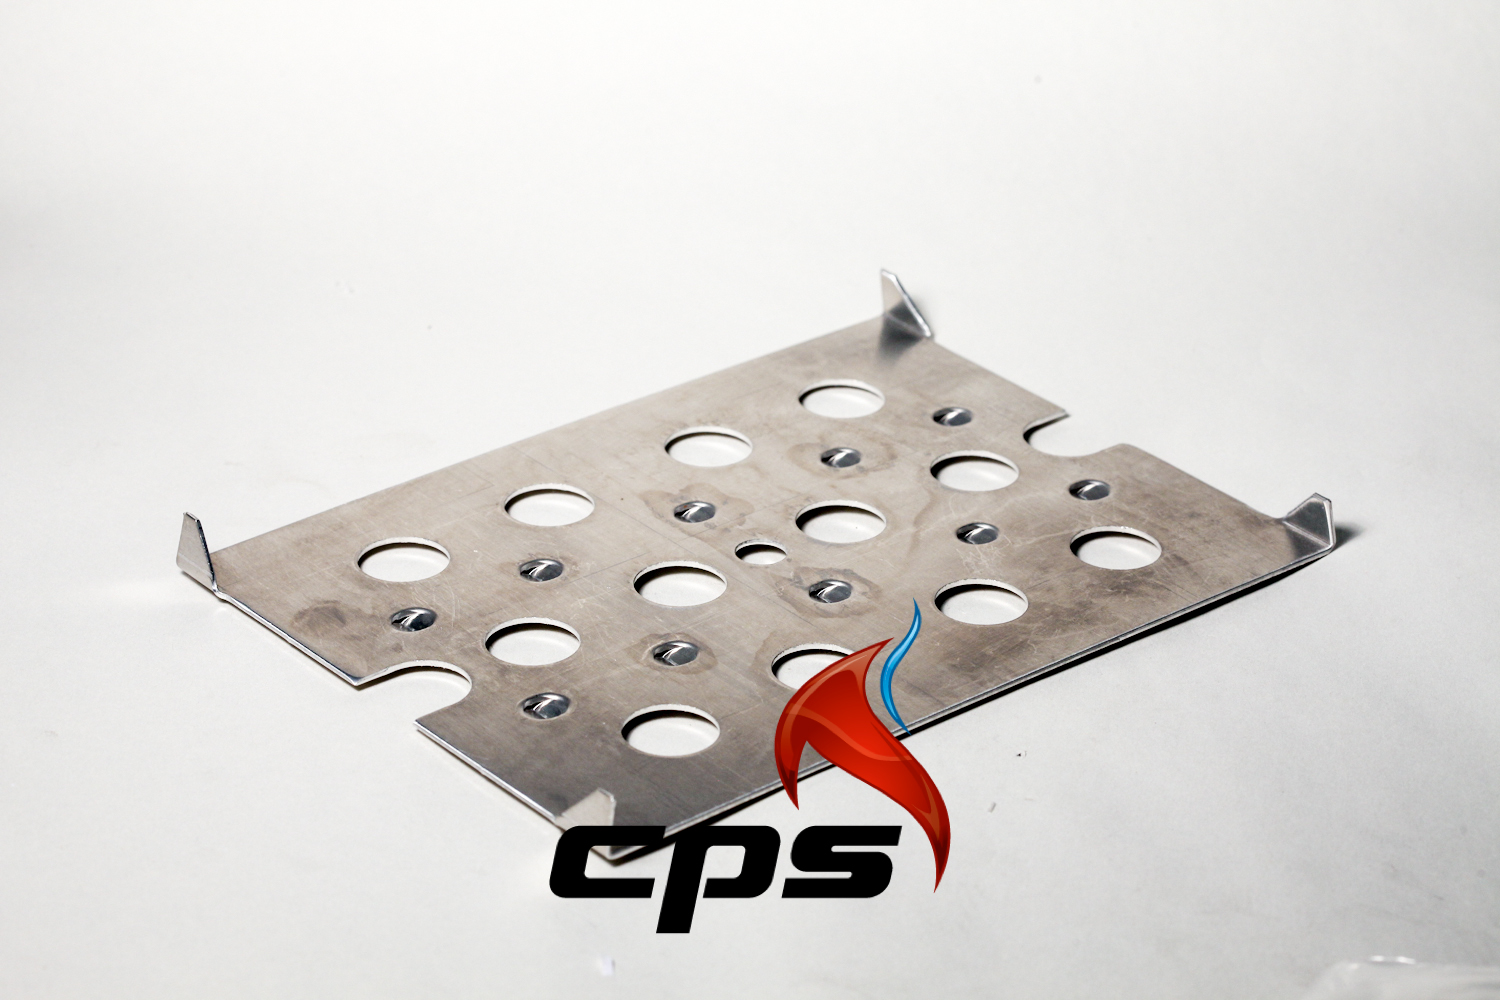 0500978 - Roundup Food Equipment - CPS